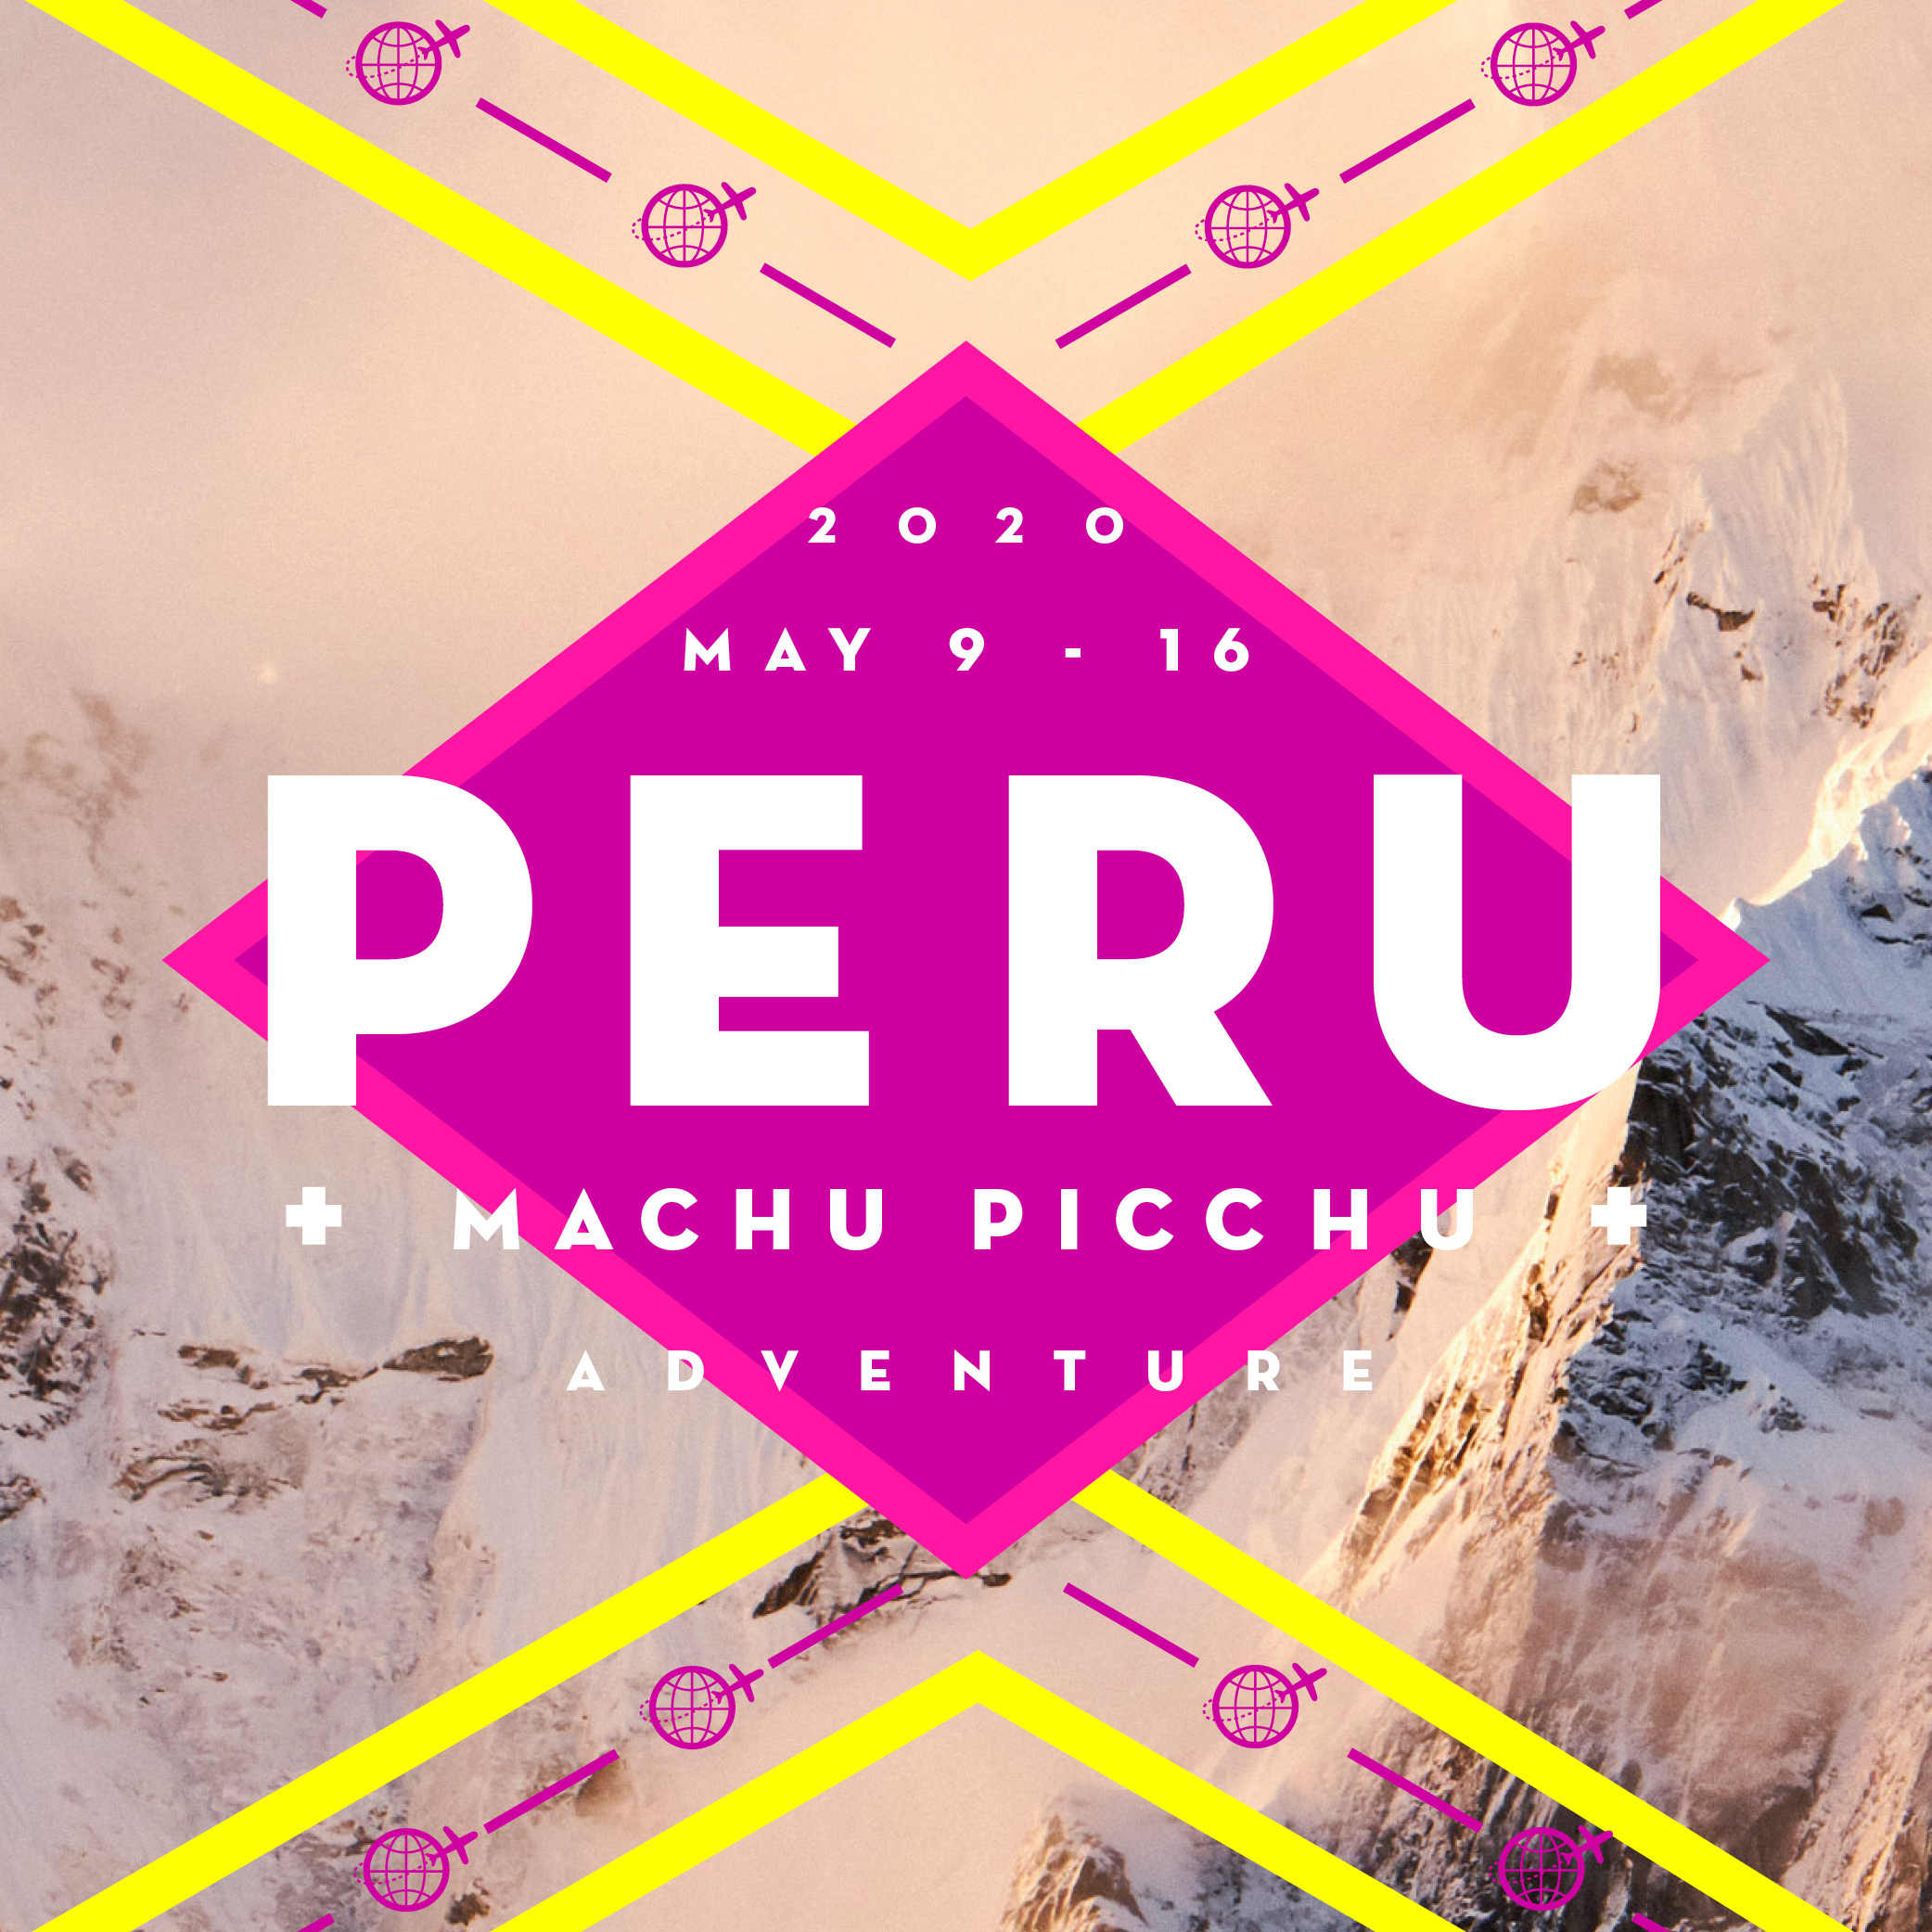 MAY 9 - 16 - 2020PERU-SE THIS EPIC TREK